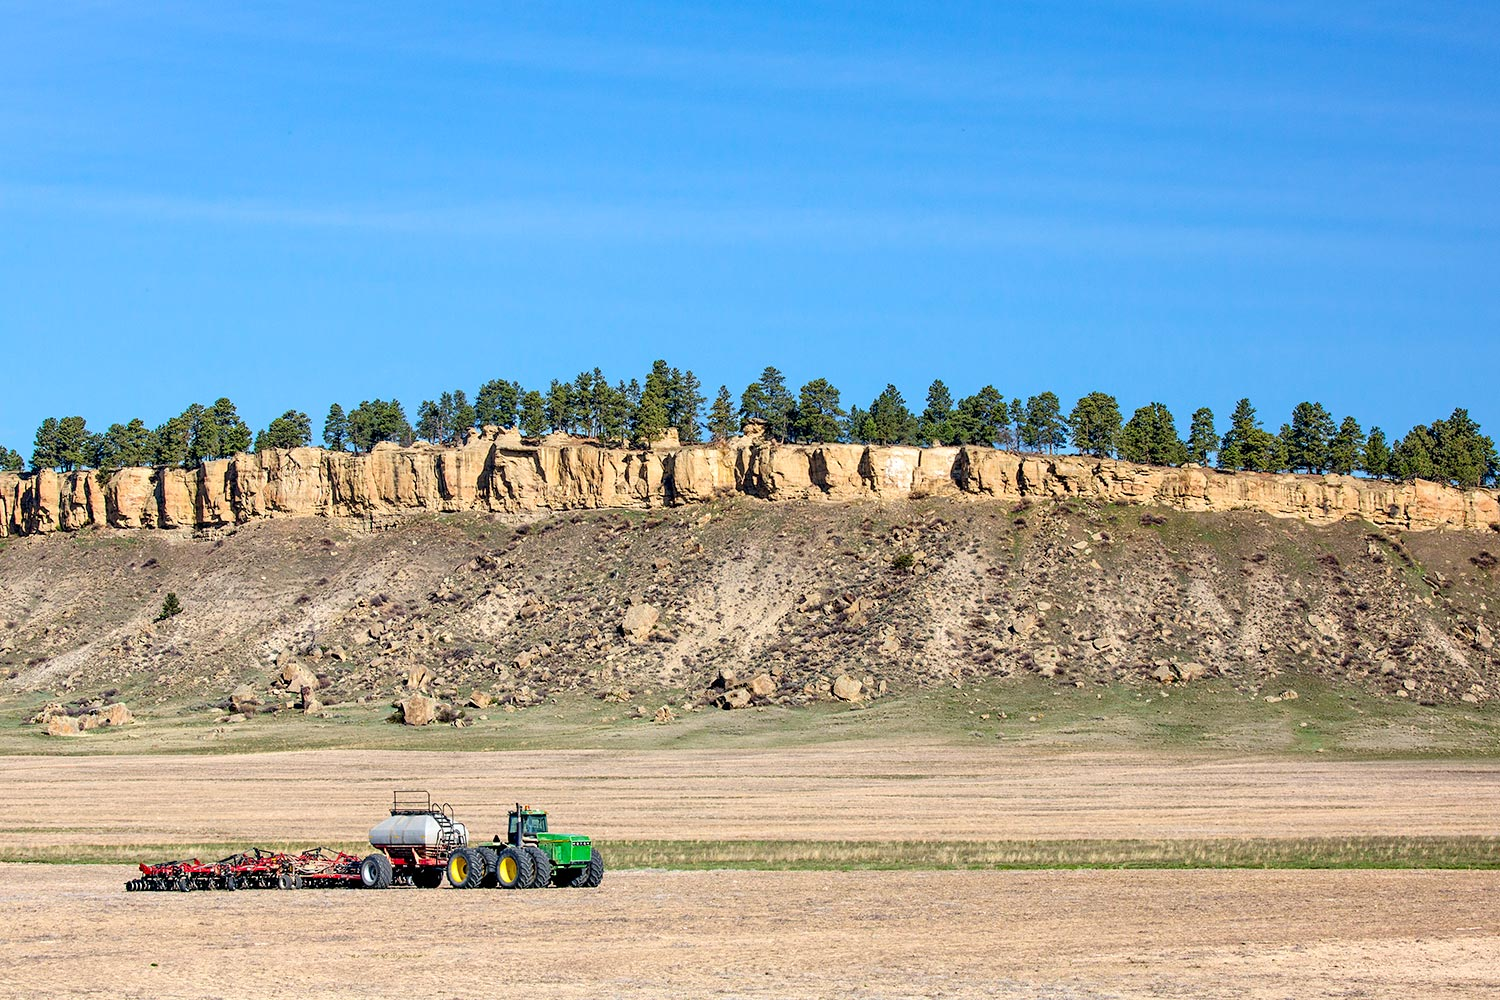 Farm equipment parked by the rimrocks near Ryegate, Montana.  → Buy a Print  or   License Photo